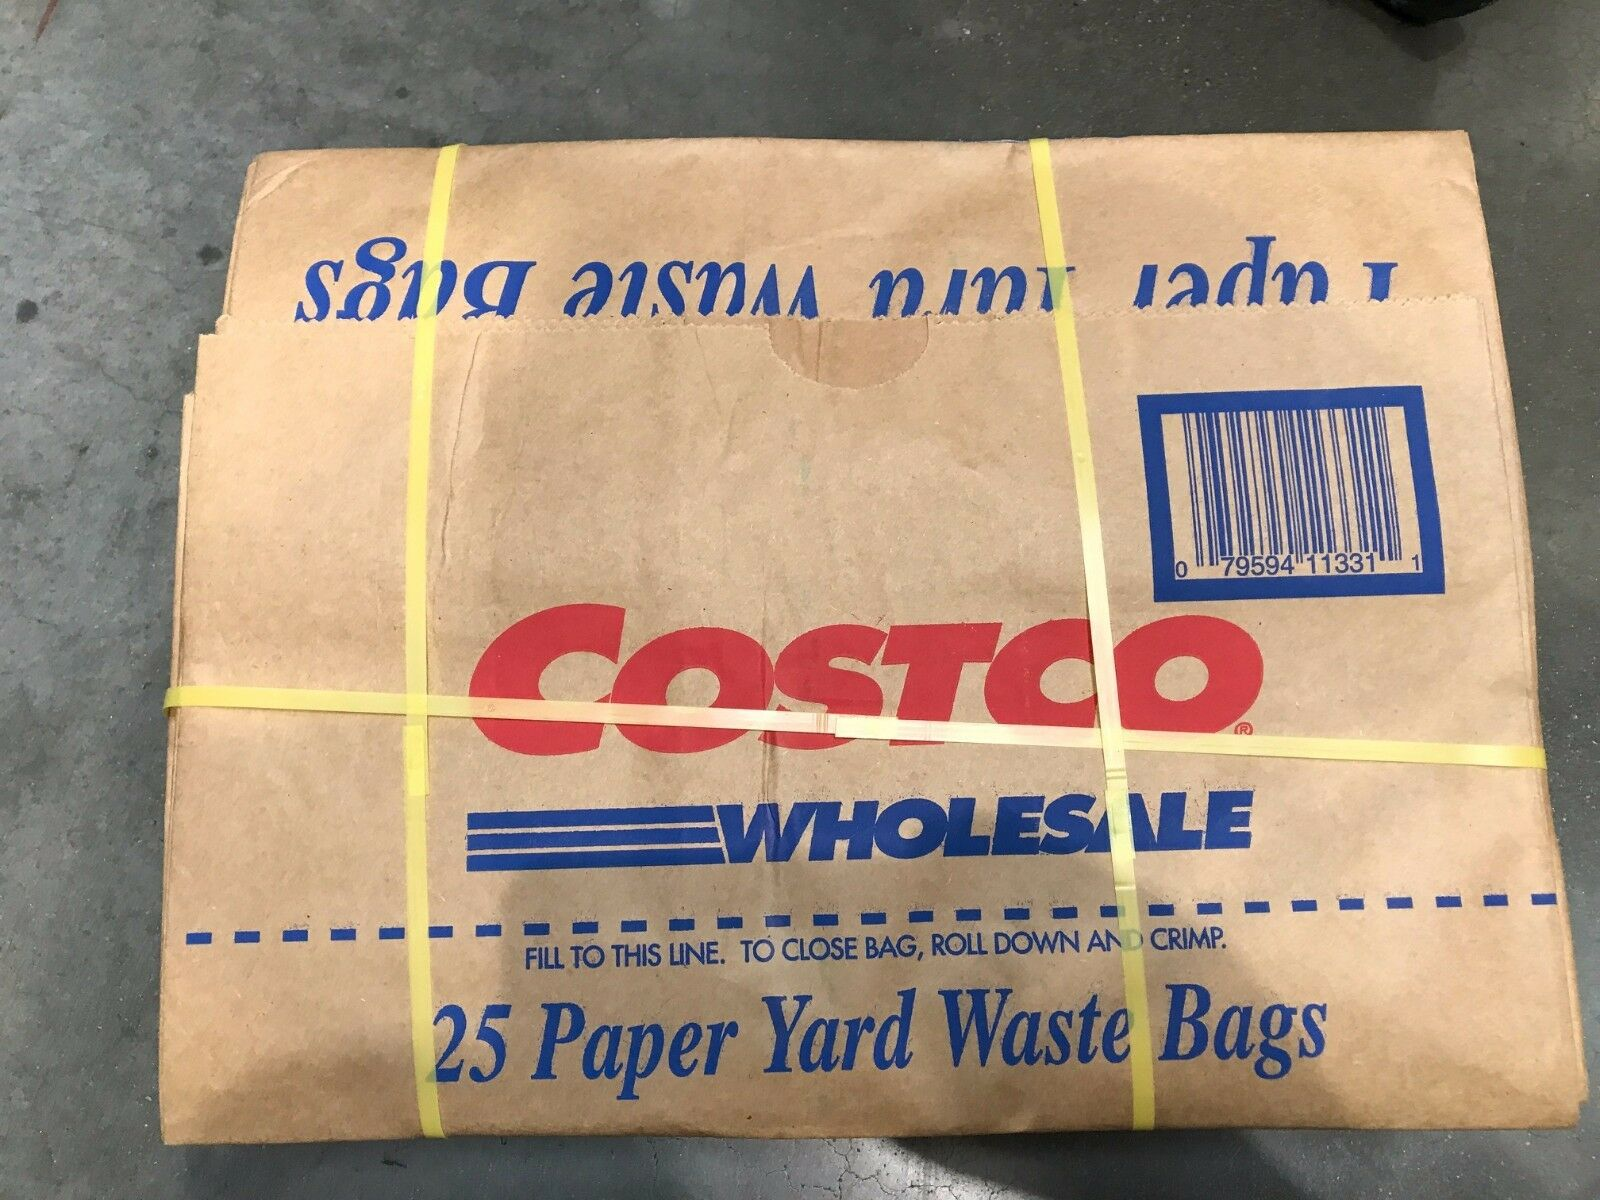 30 Gallon Paper Yard Waste Bags 3 Count